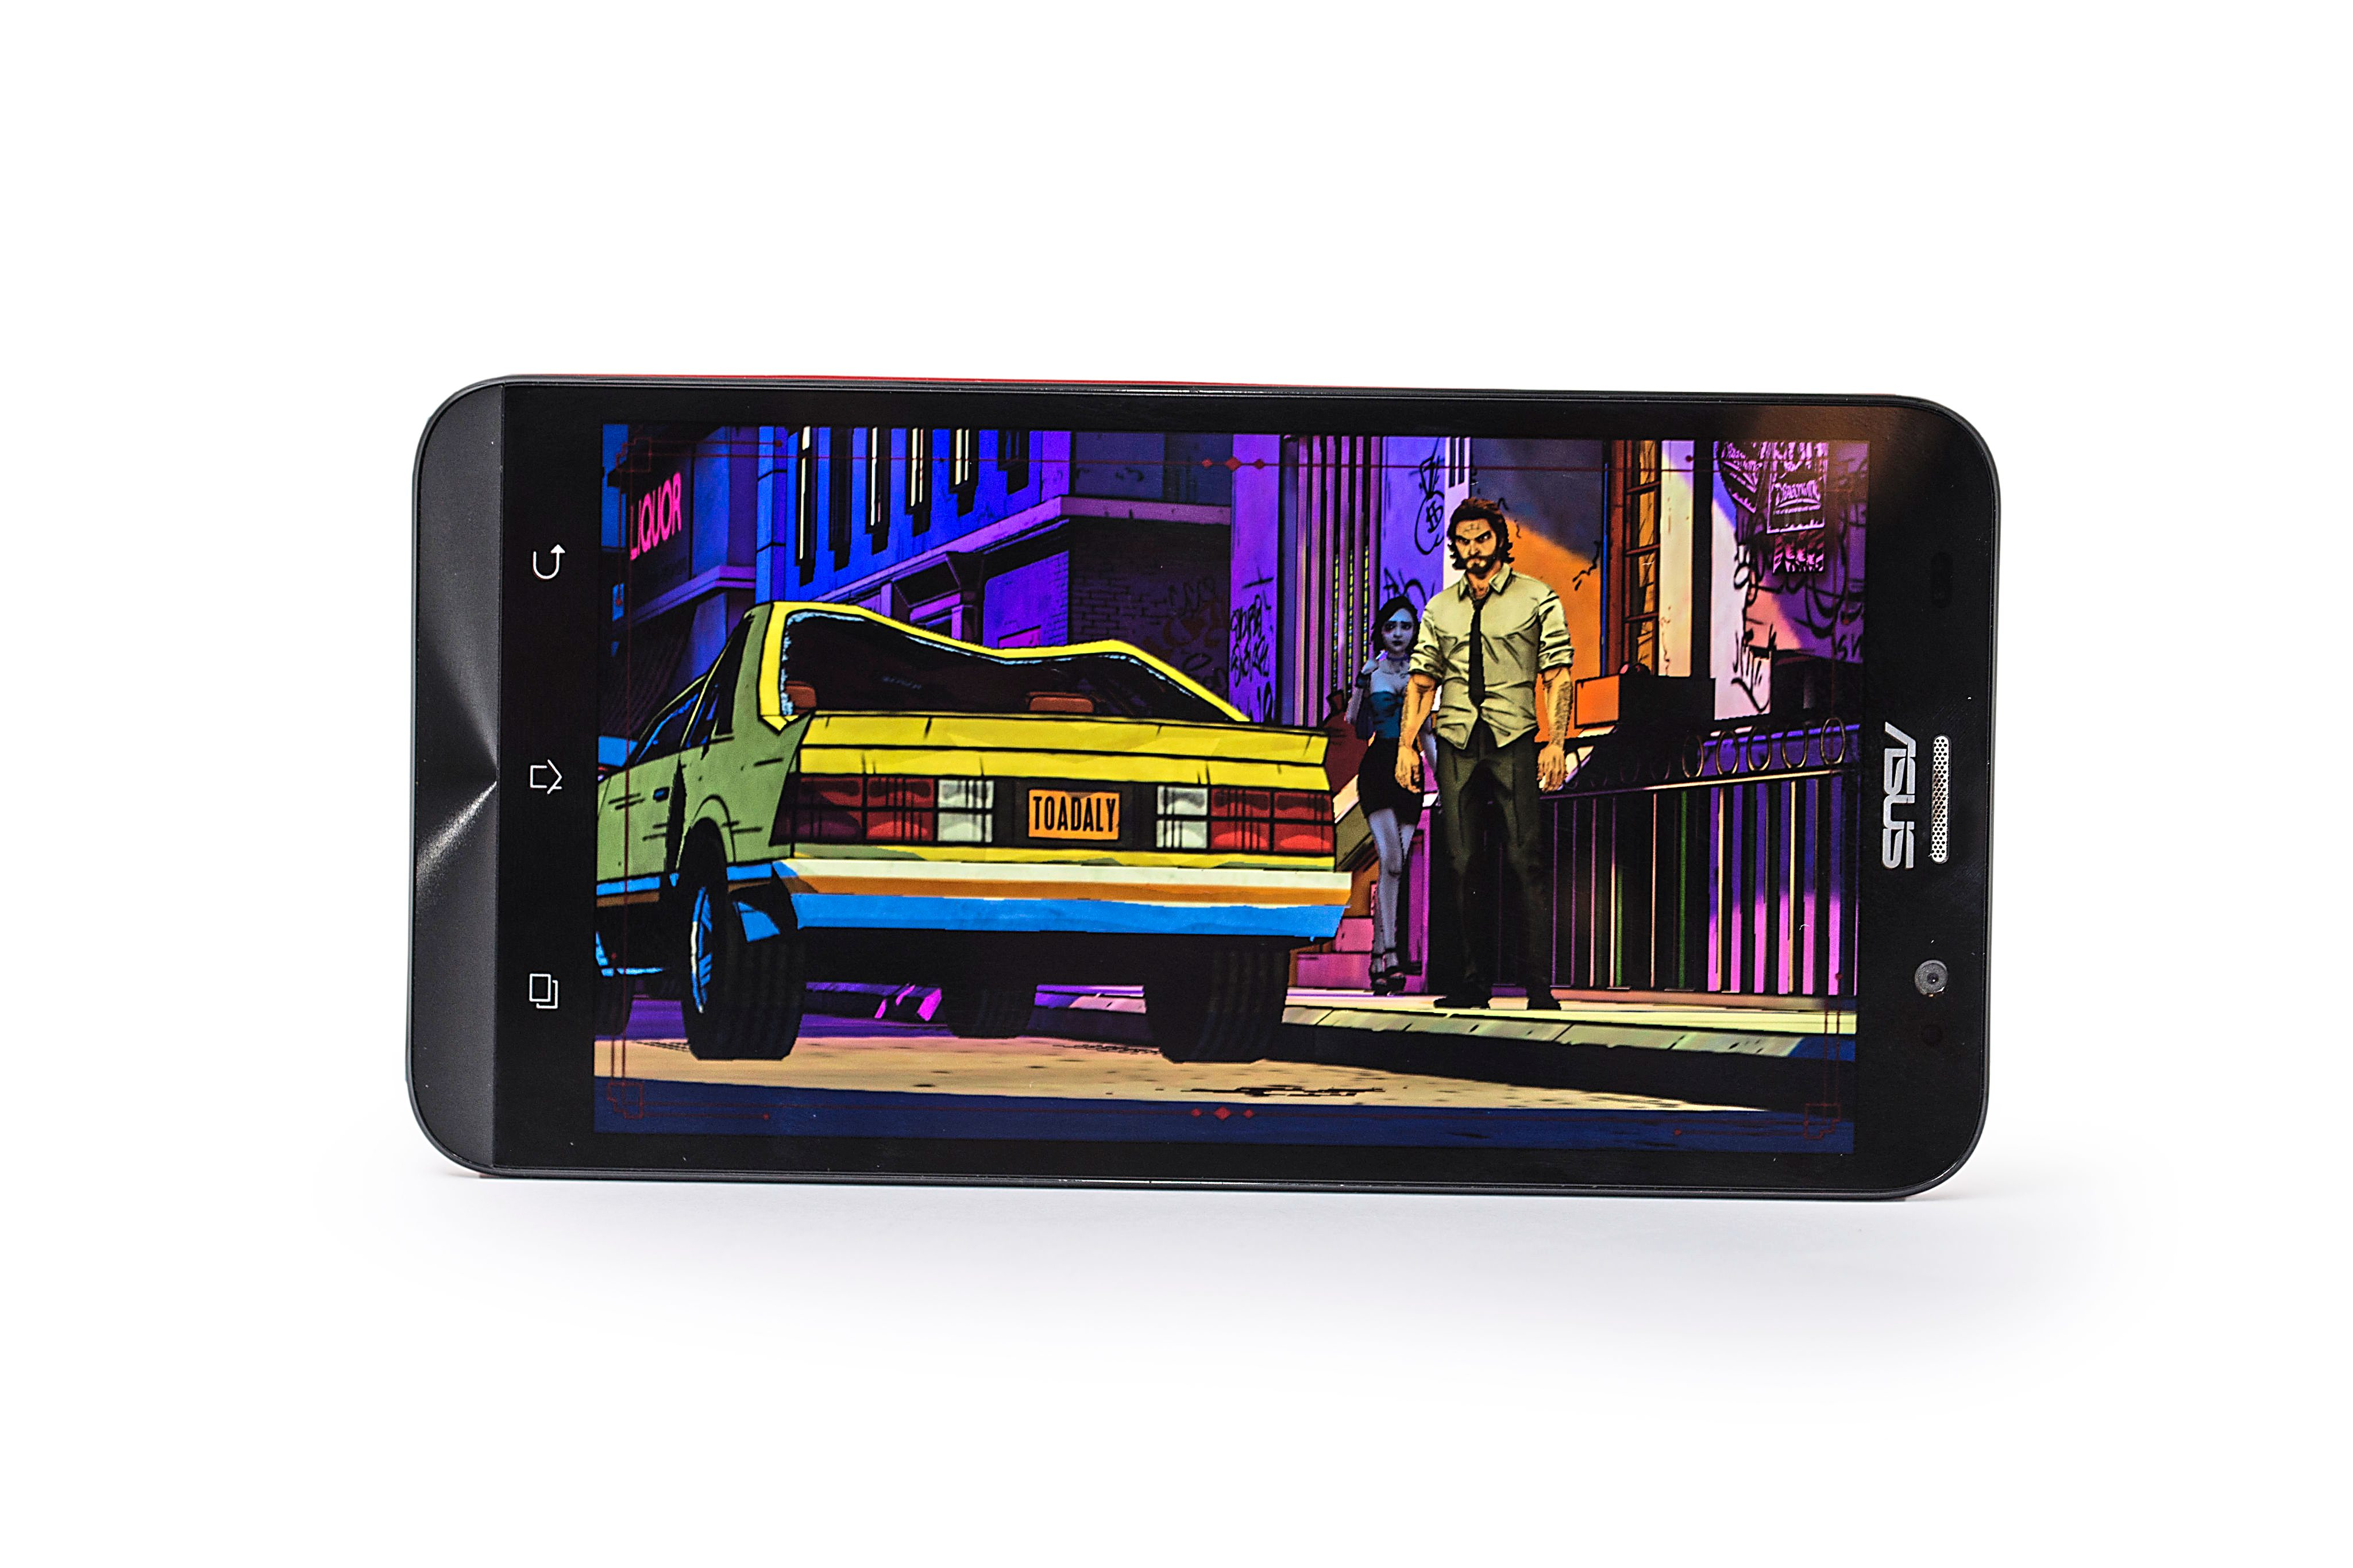 The Wolf Among Us performed well without any issues on the Zenfone 2, which is powered by Intel Atom 2.3GHz quad-core processor.